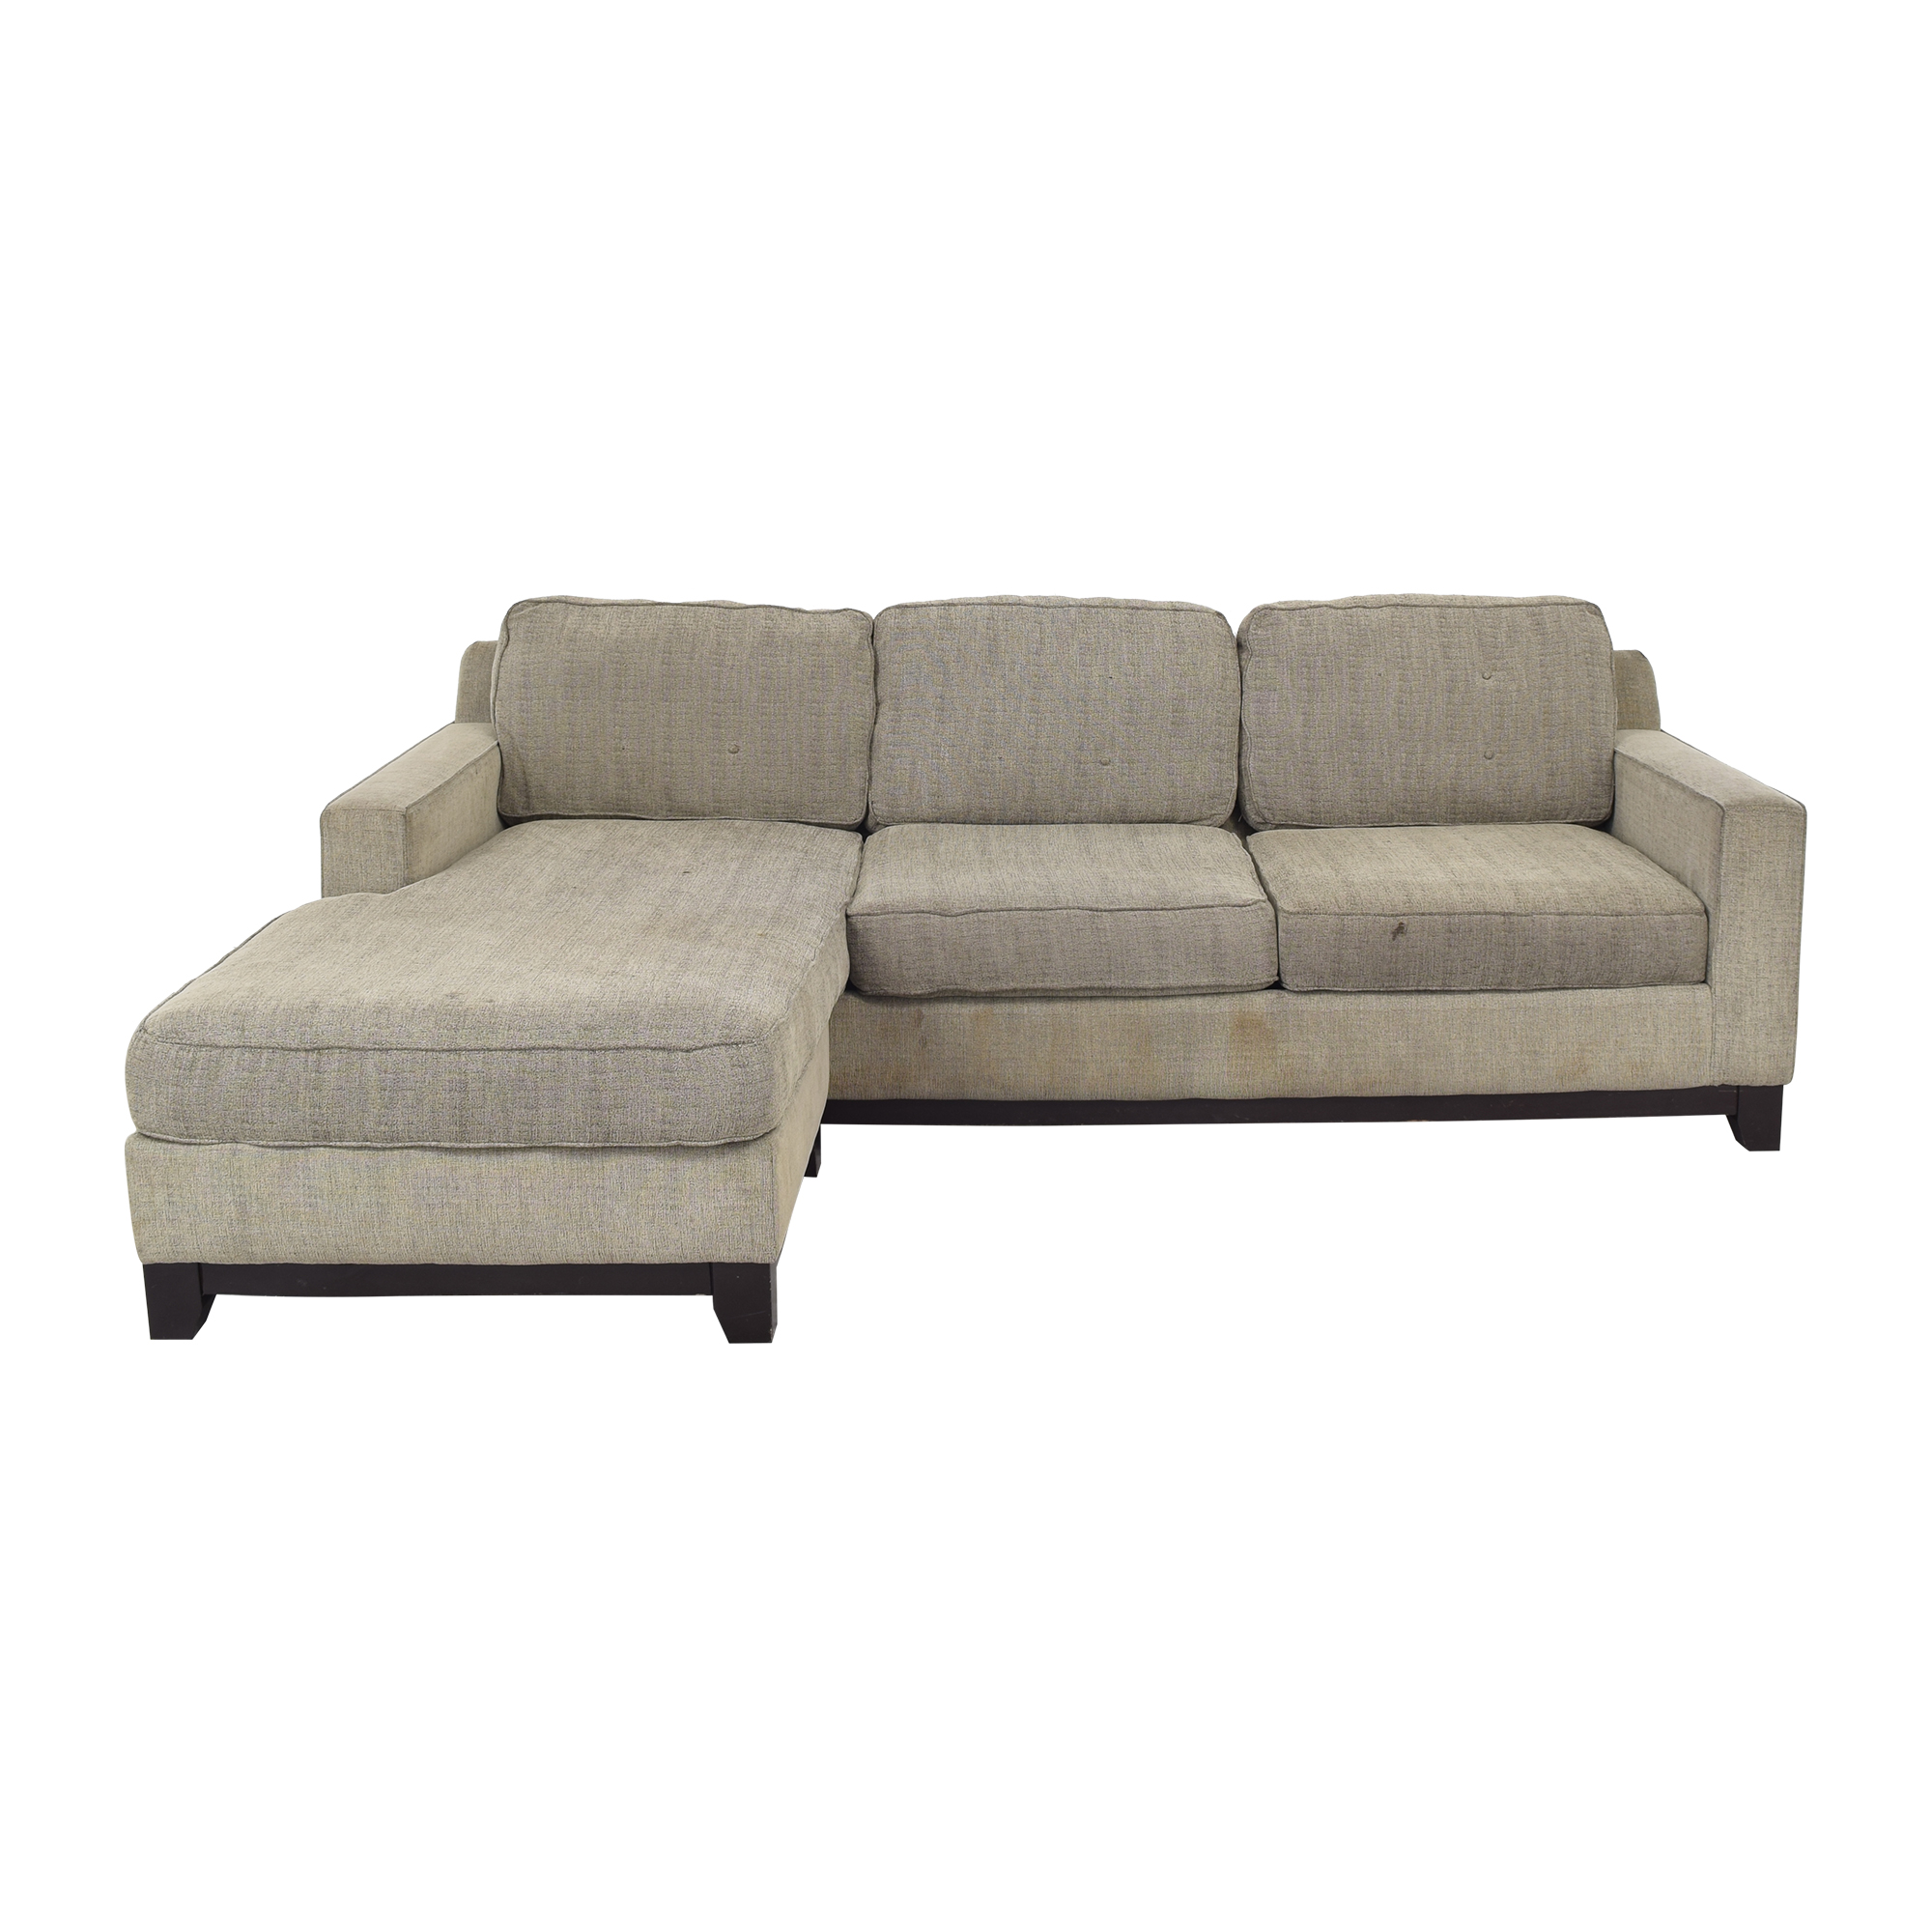 shop Jonathan Louis Chaise Sectional Sofa Macy's